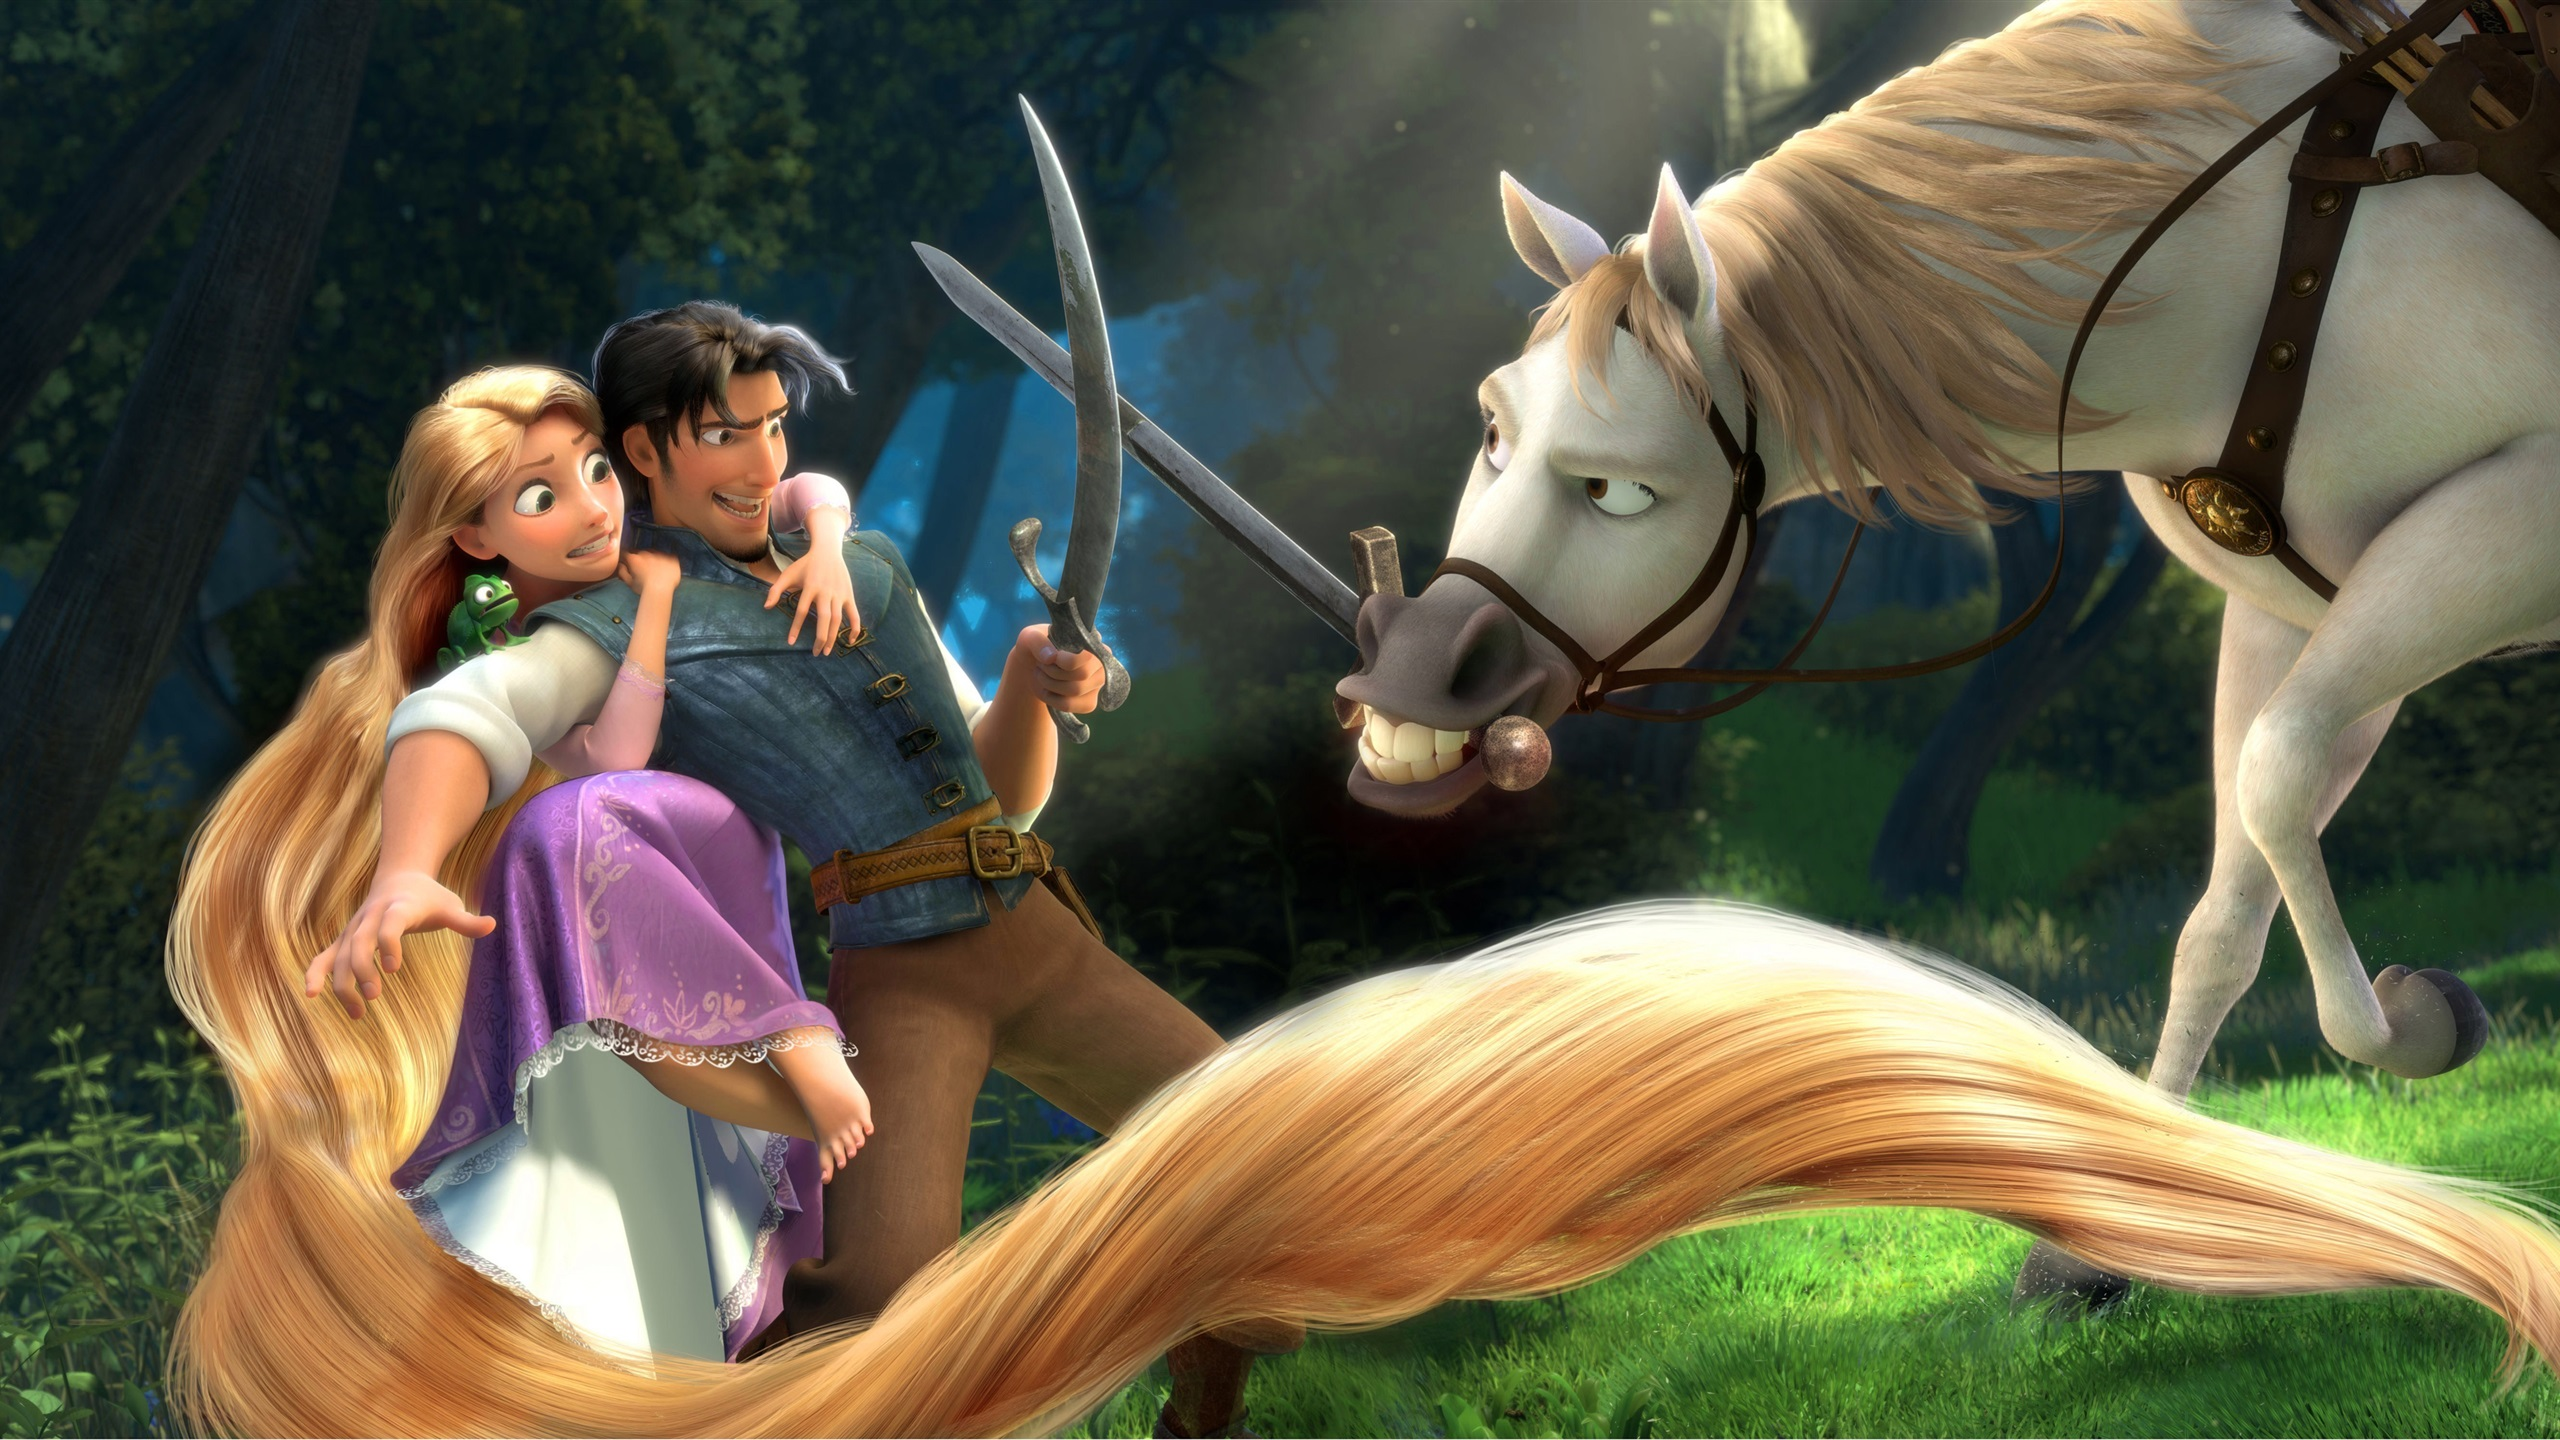 tangled full movie download in english hd